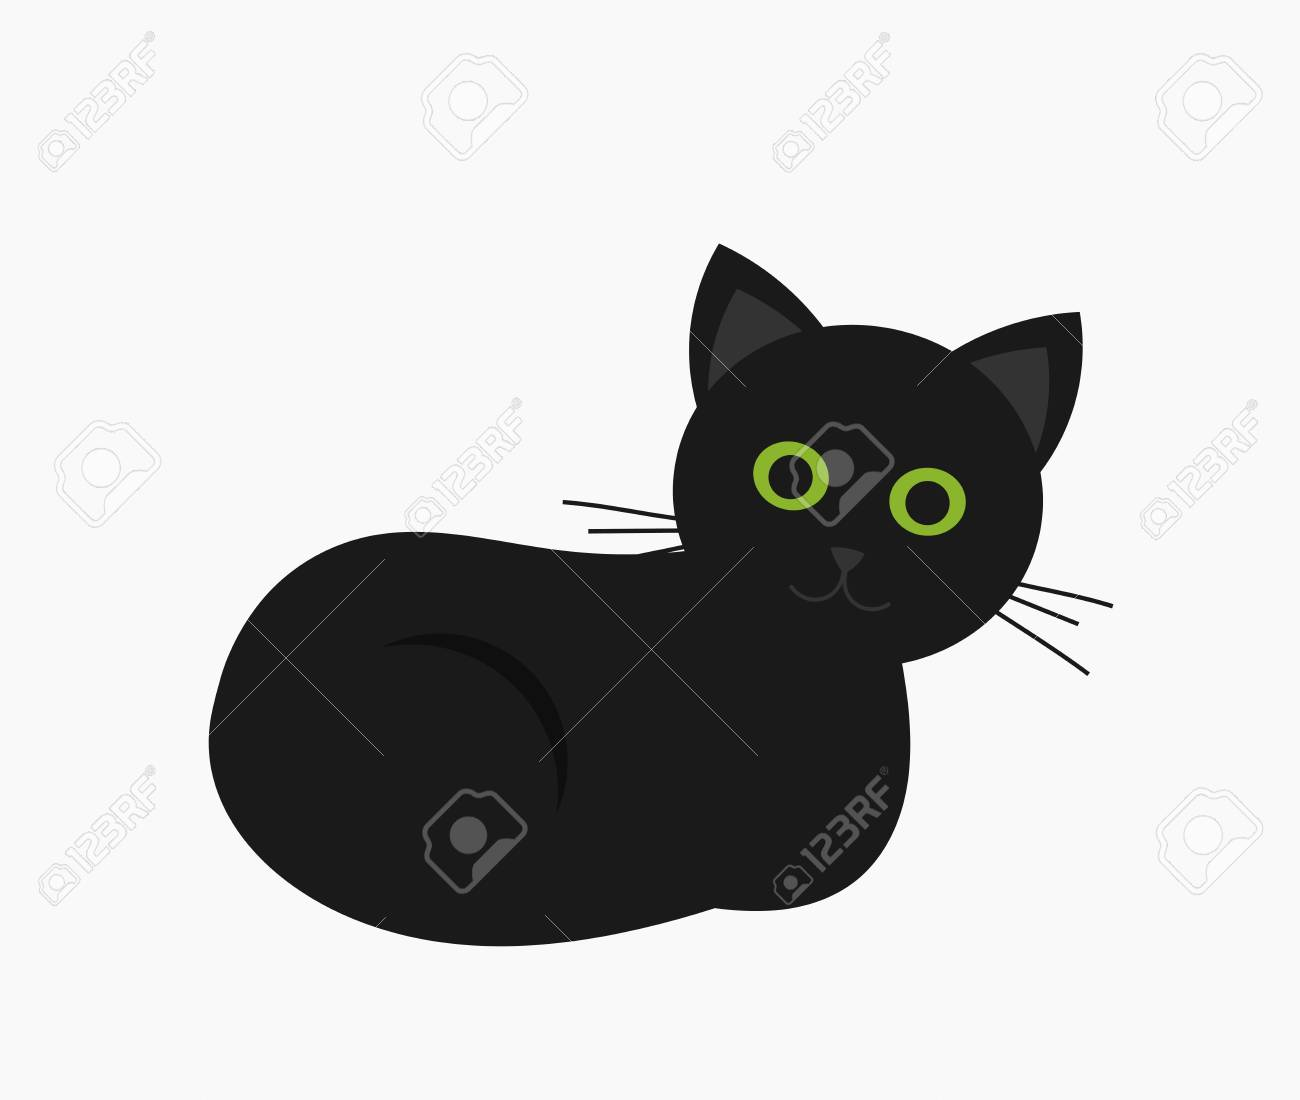 Cute Black Cat With Green Eyes Vector Illustration Royalty Free